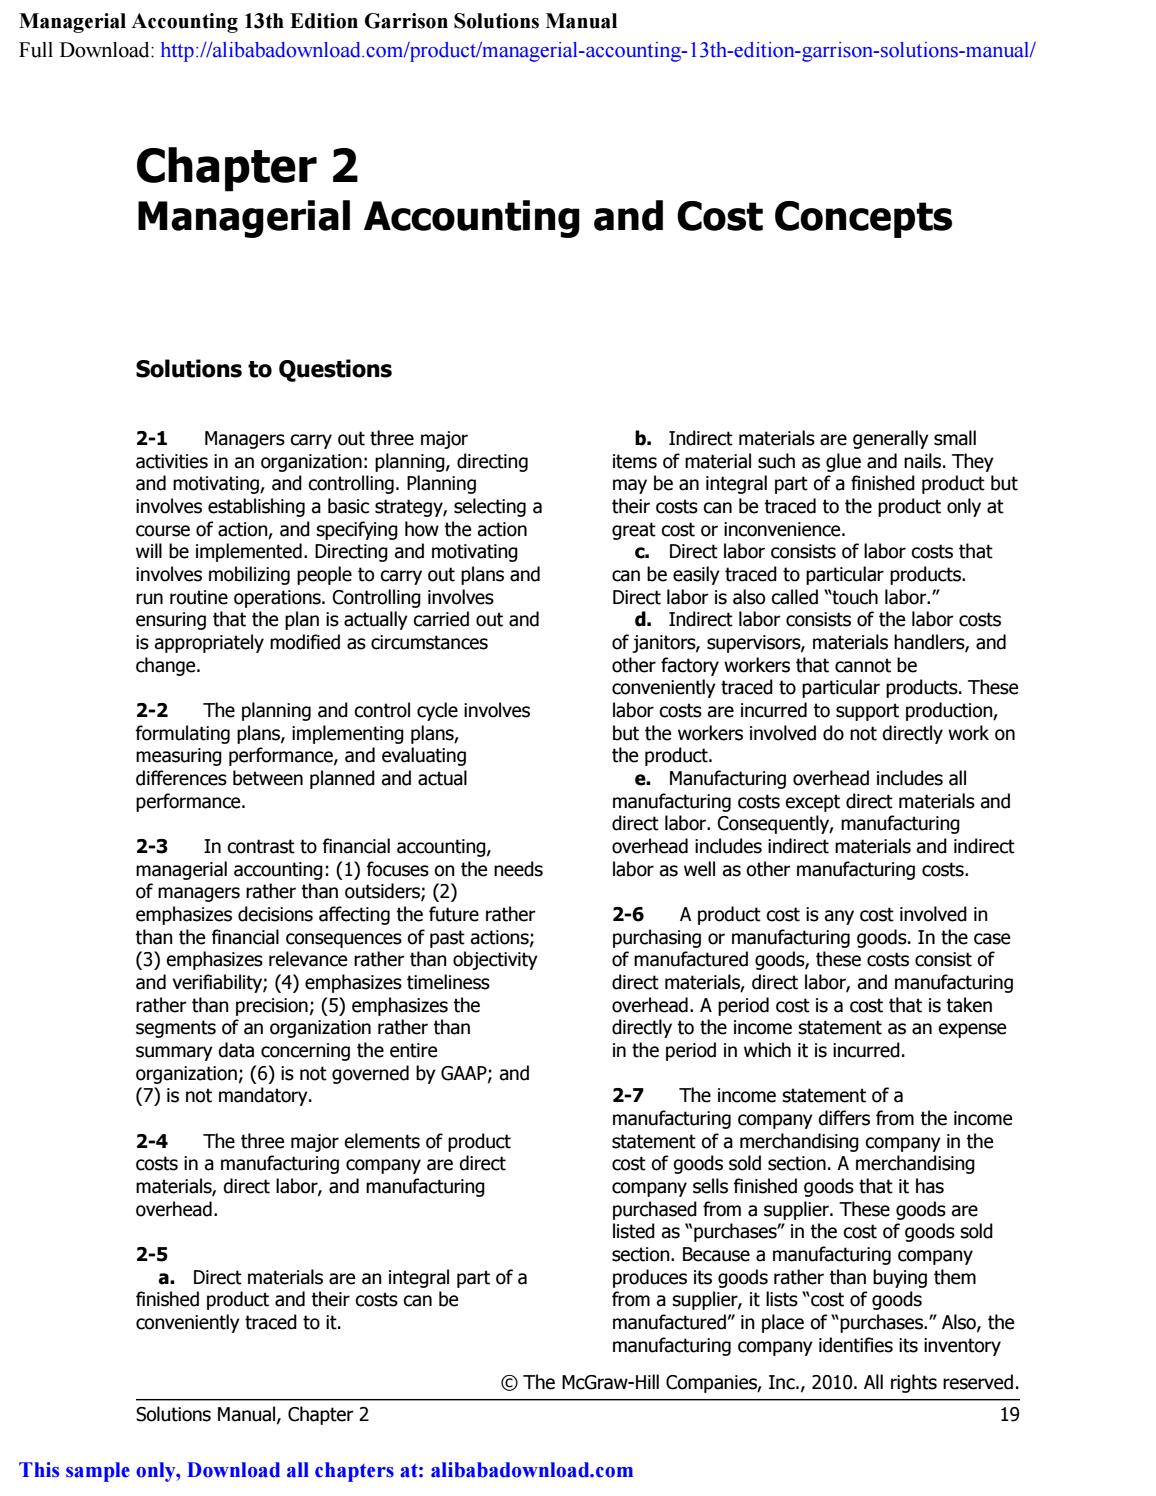 solution manual managerial accounting garrison 14th edition